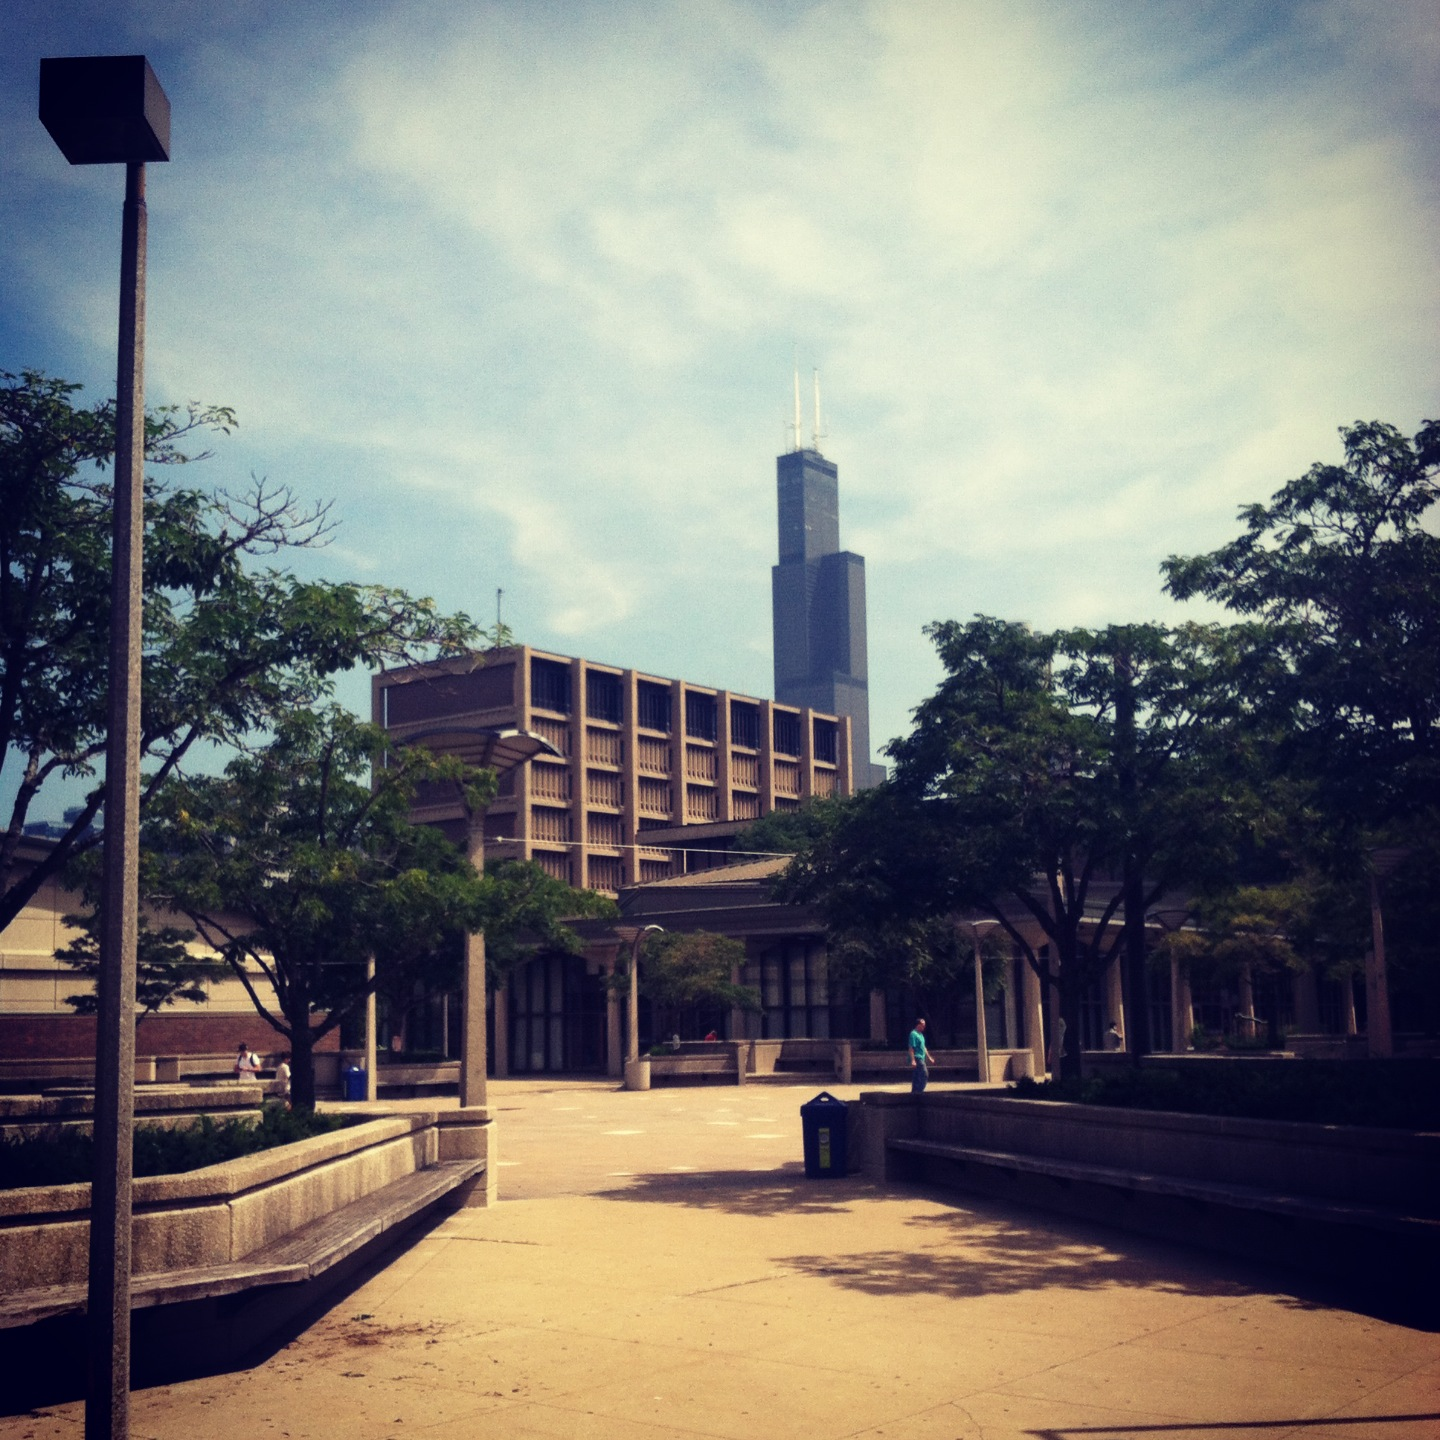 the sears tower looms beyond the brutalist campus of the university of illinois chicago, where the summer institute on sustainability and energy (SISE) takes place.